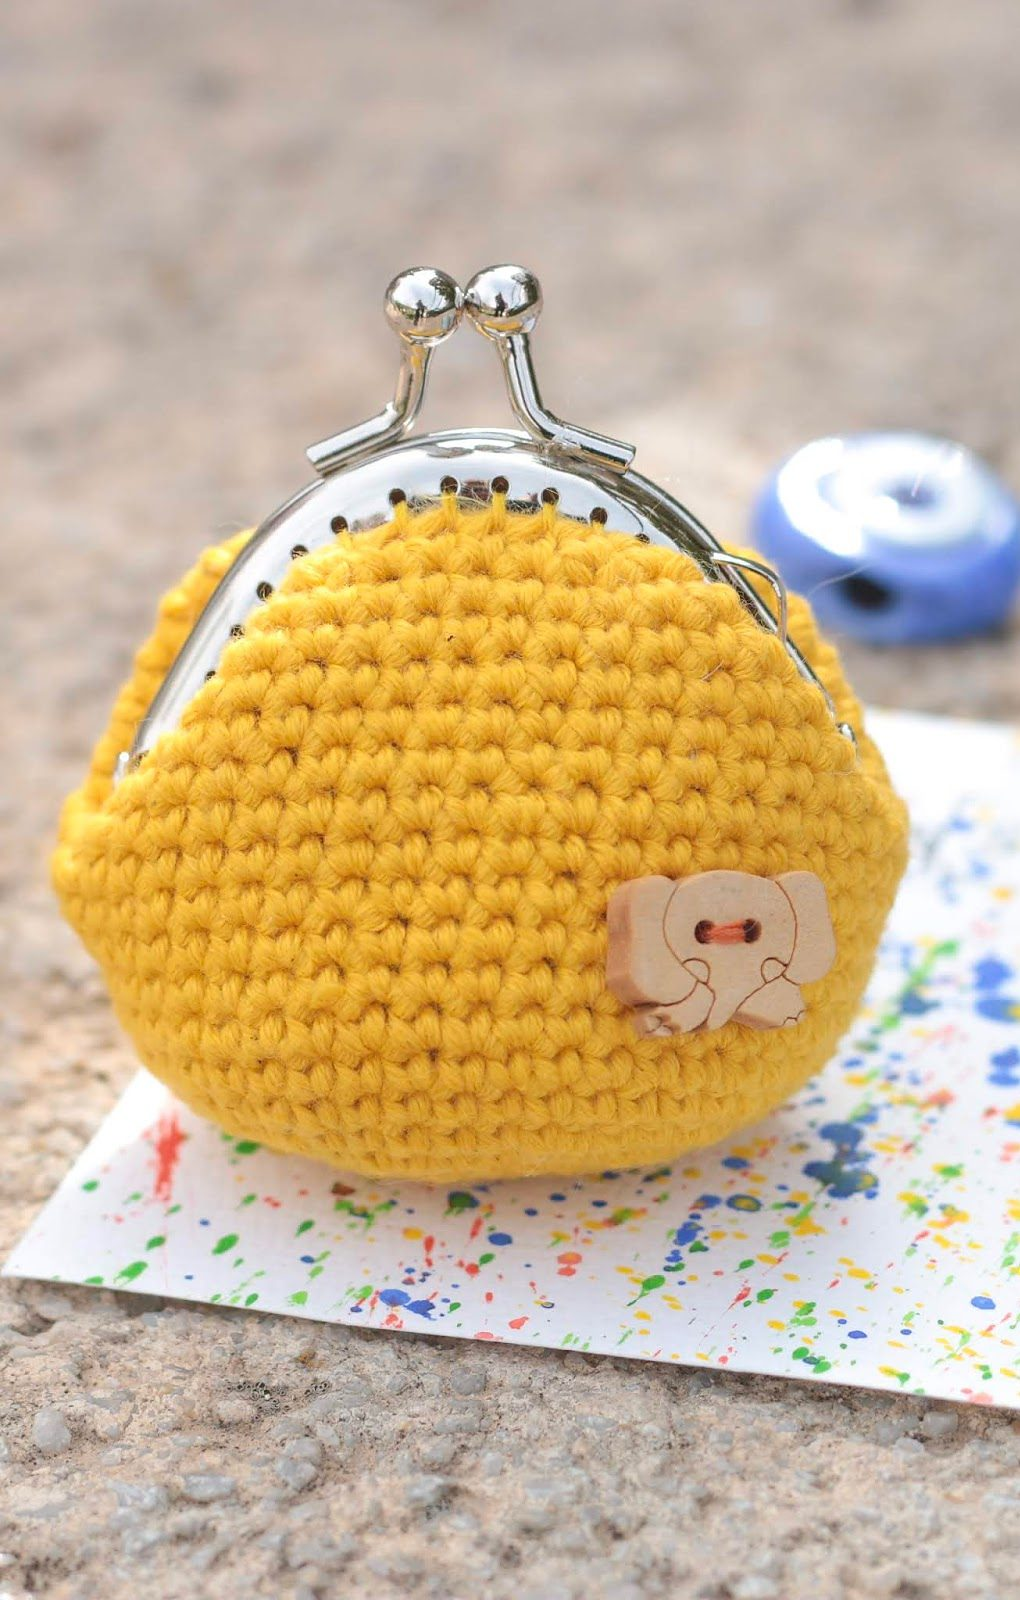 49-lovely-and-sweet-crochet-bags-pattern-ideas